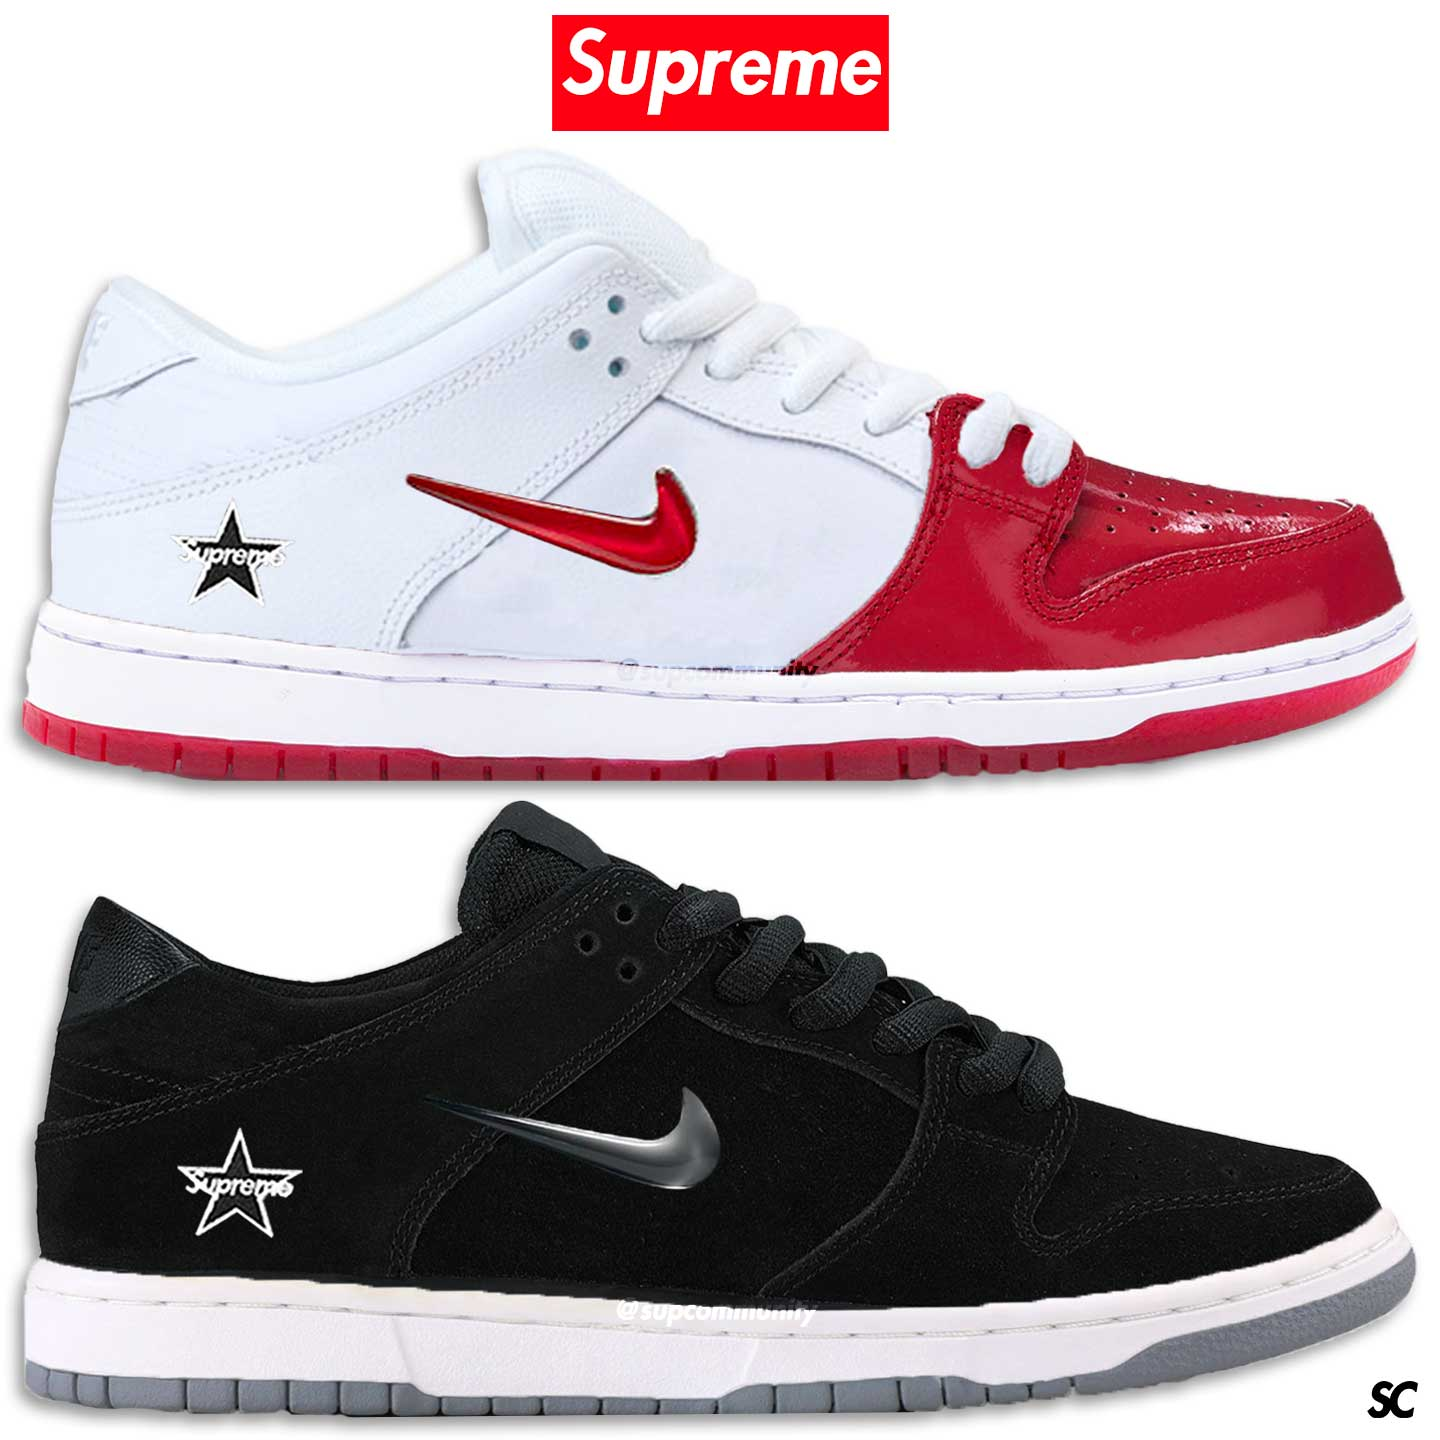 reputable site c1614 1d4e7 Nike & Supreme Are Linking Up Again On The Nike SB Dunk Low ...